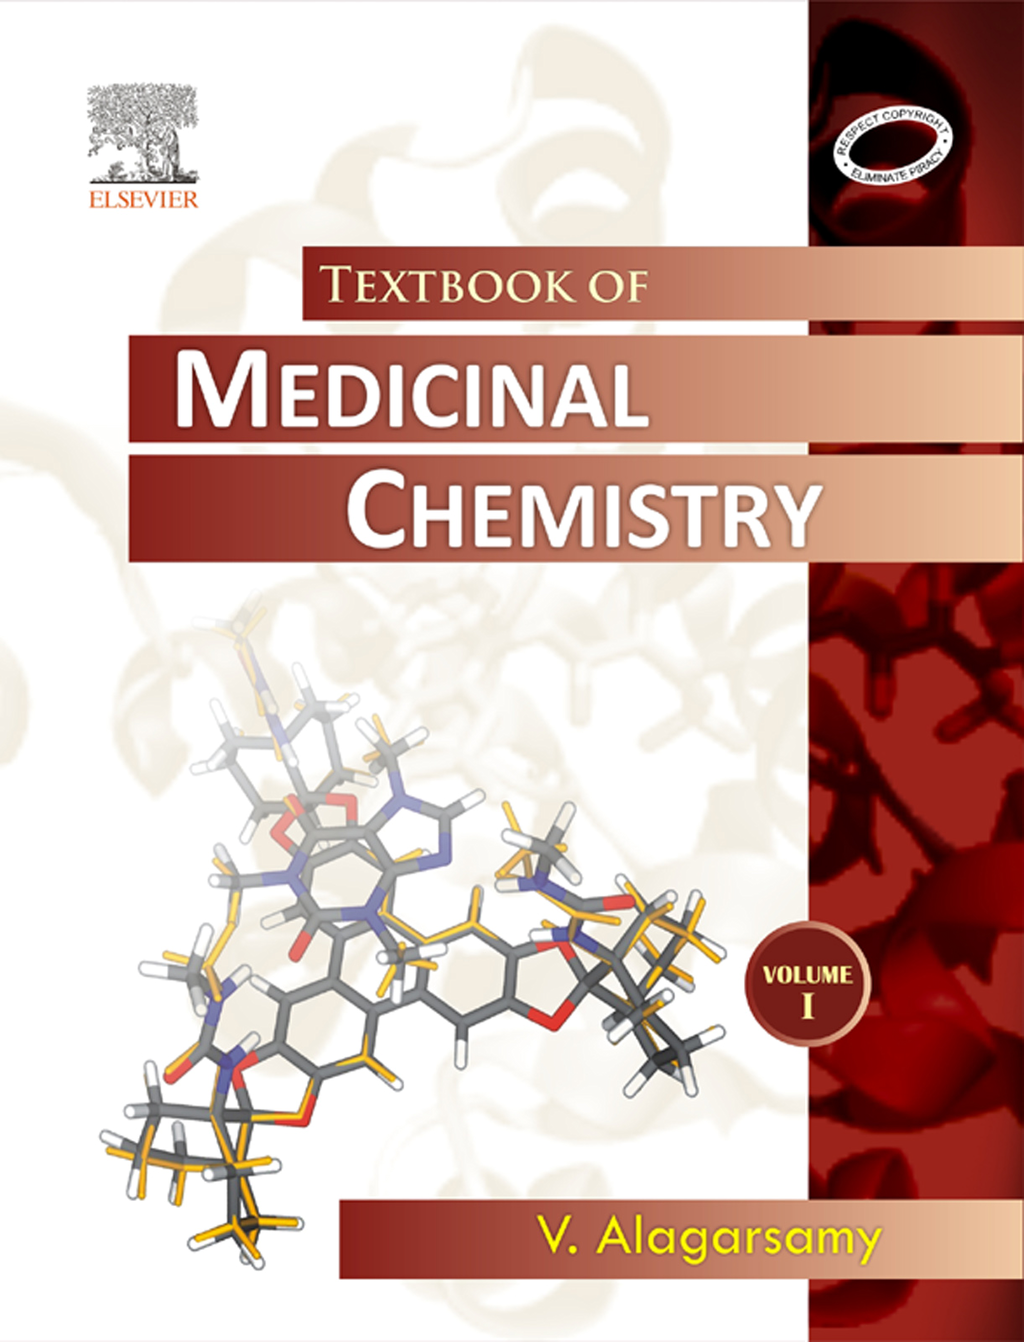 Textbook of Medicinal Chemistry Vol I